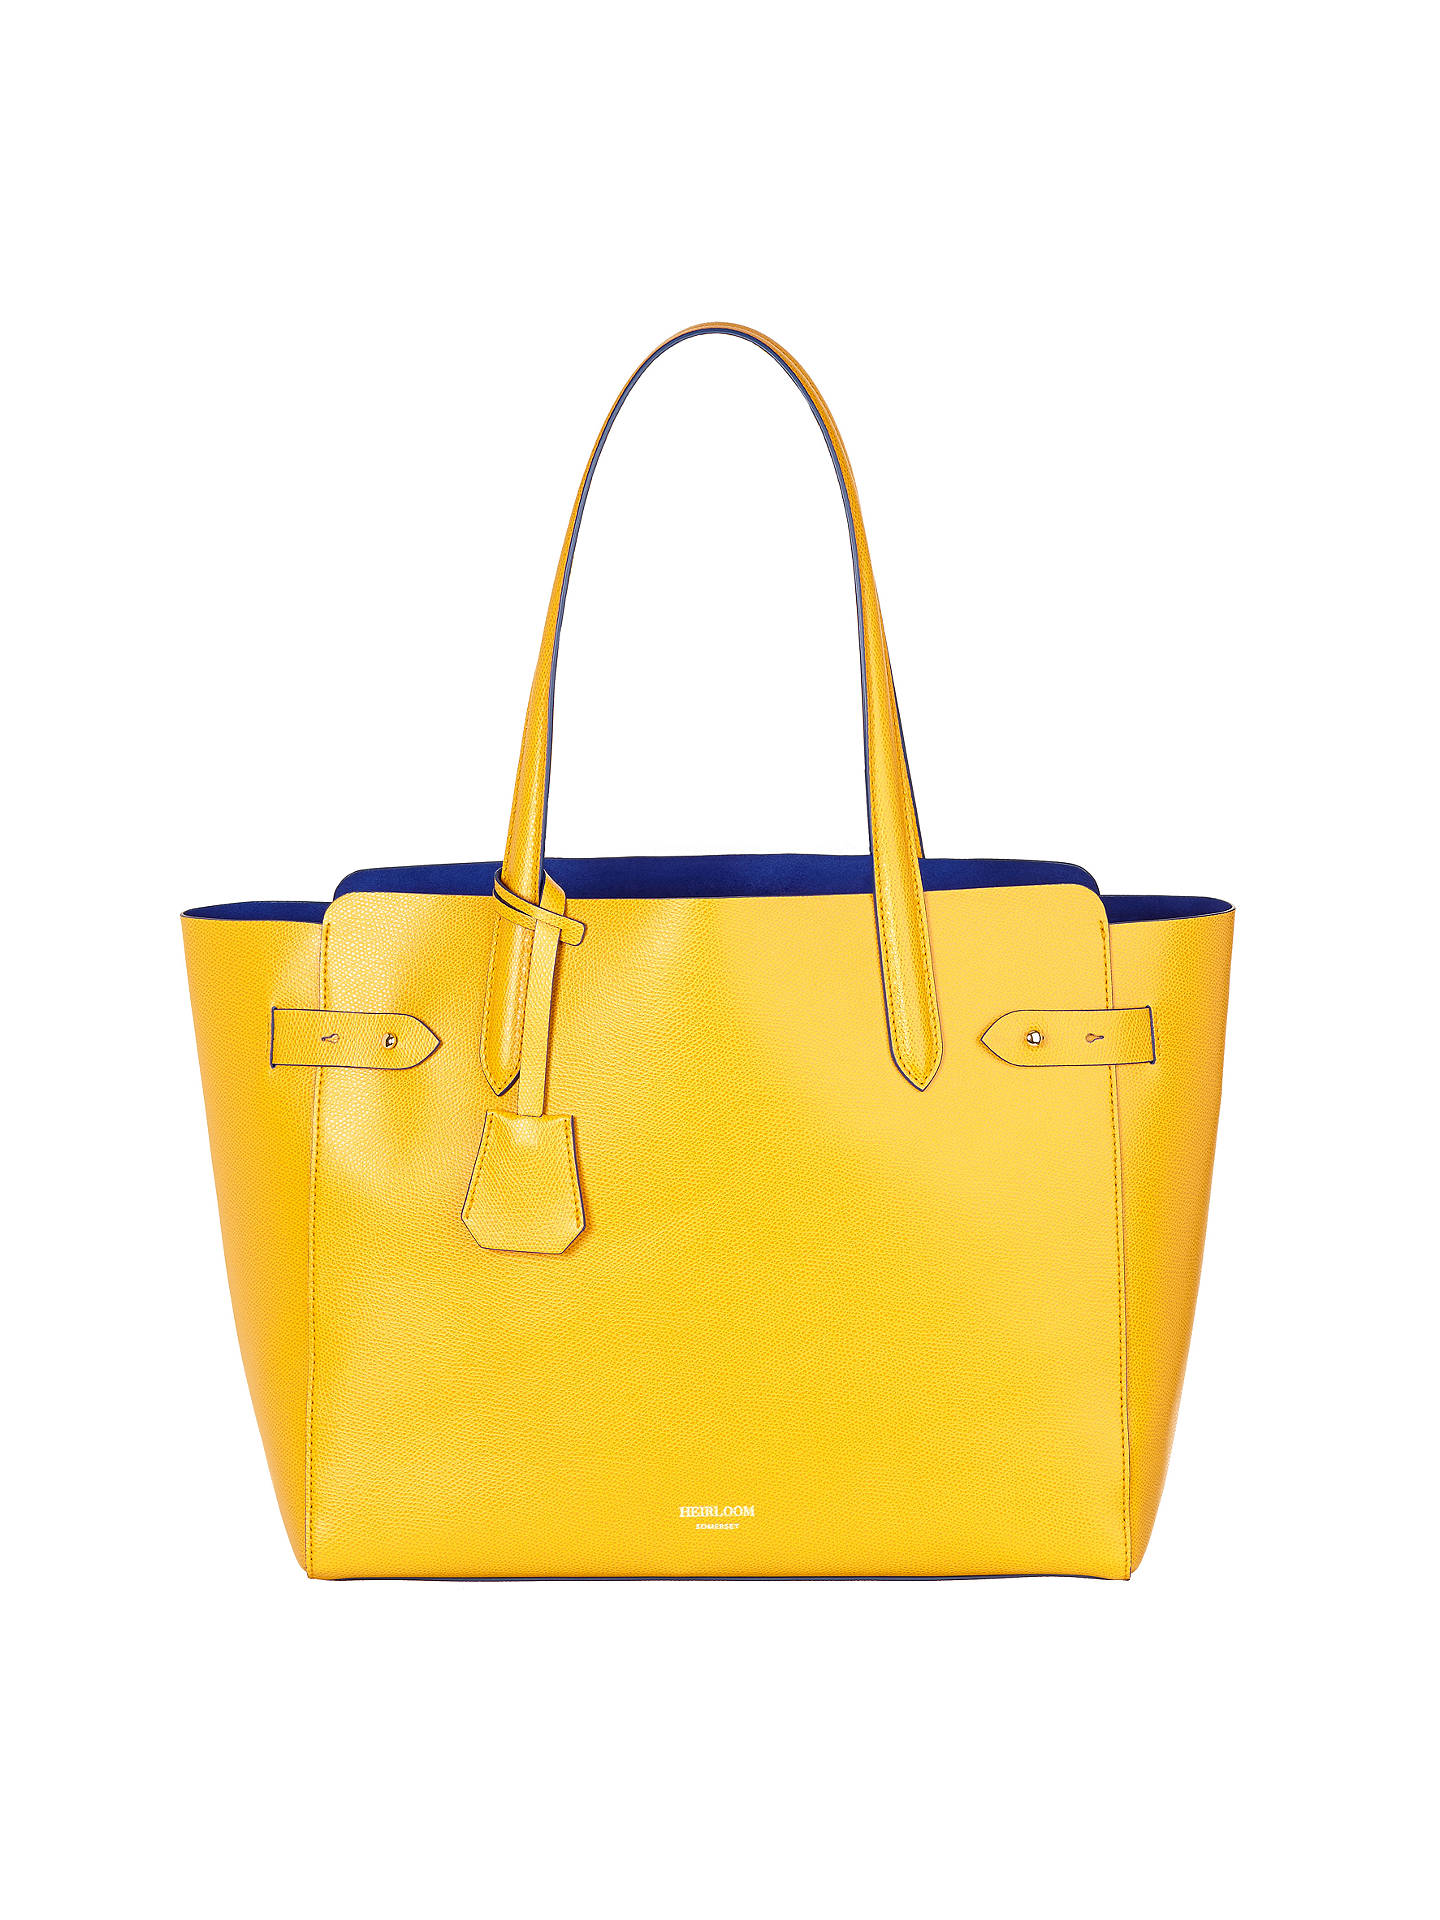 Modalu Heirloom Large Leather Tote Bag Yellow Online At Johnlewis